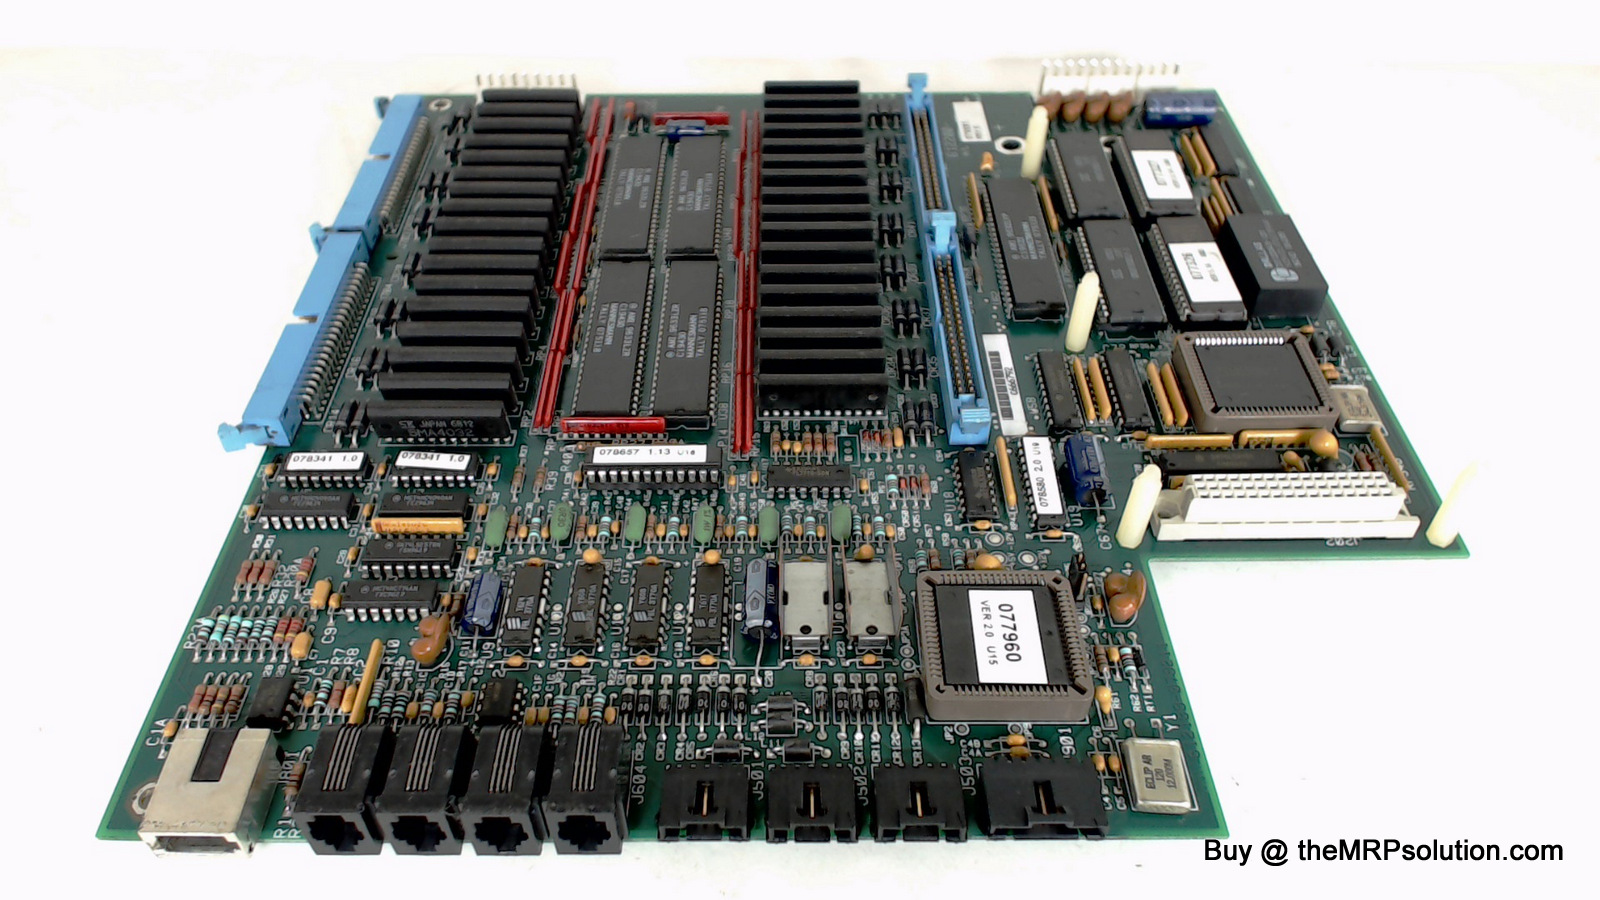 TALLYGEN 079281 LOGIC BOARD, T691 New